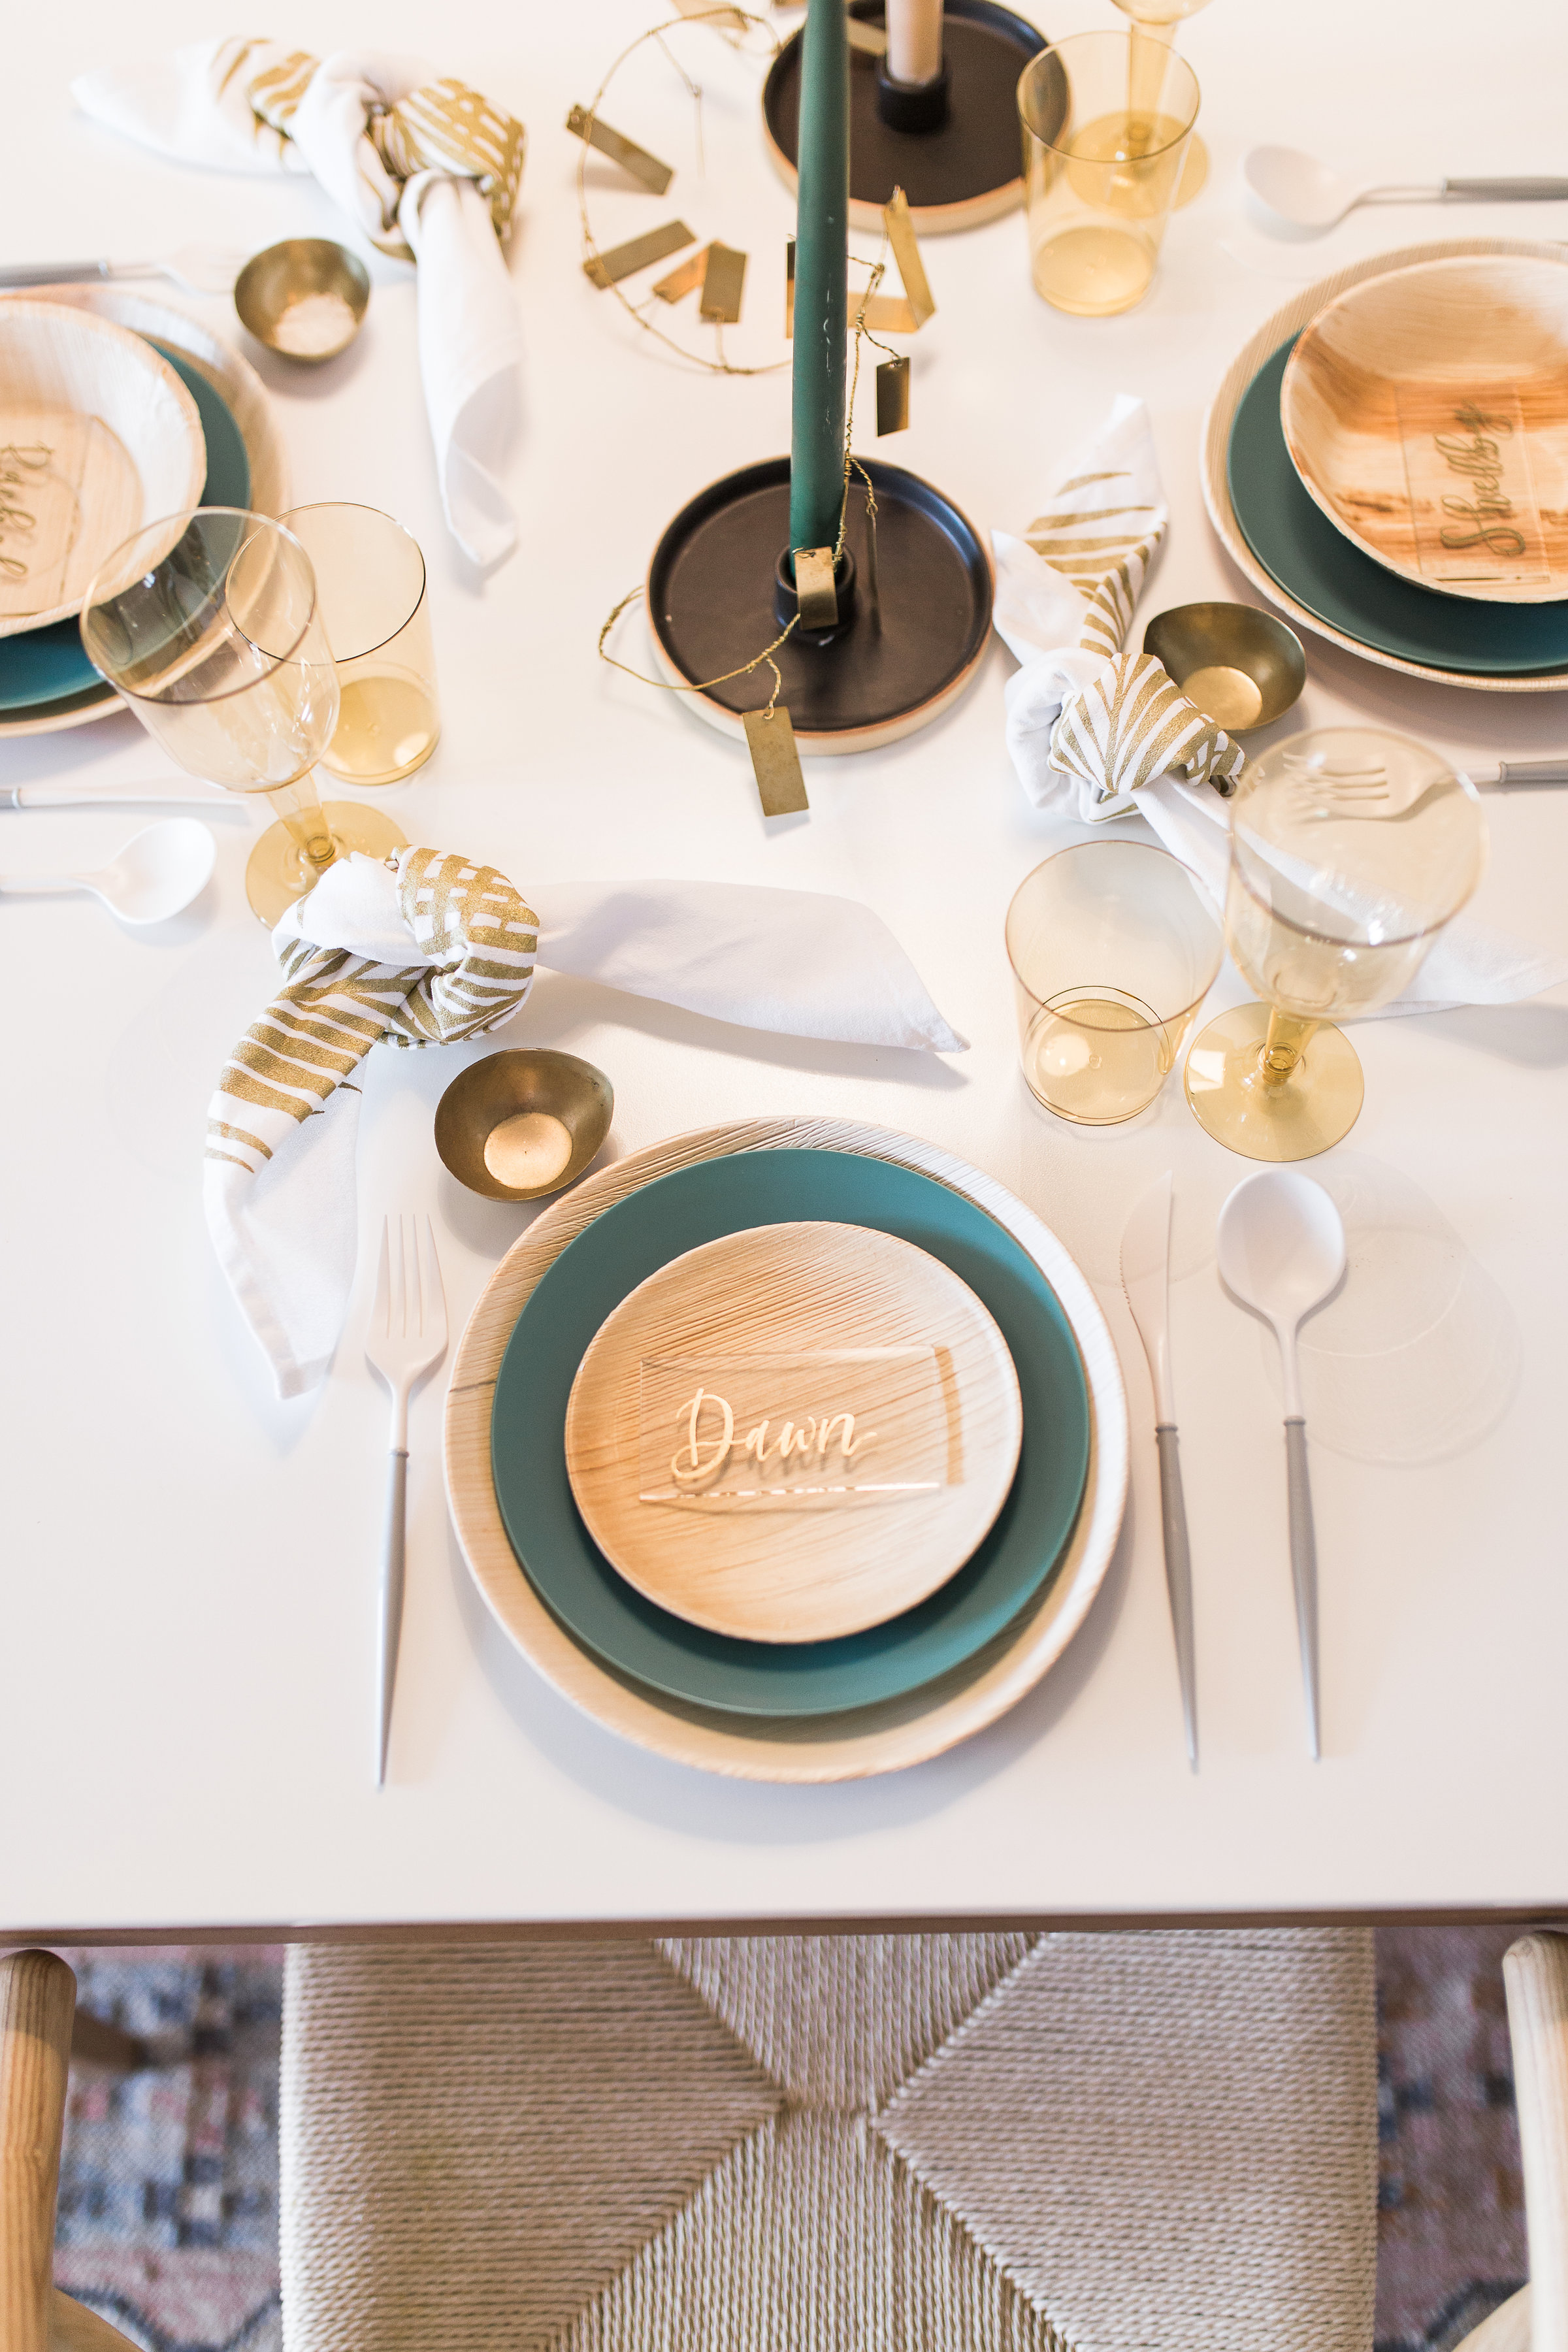 simple and clean dinner party decor ideas from livingforaged.com